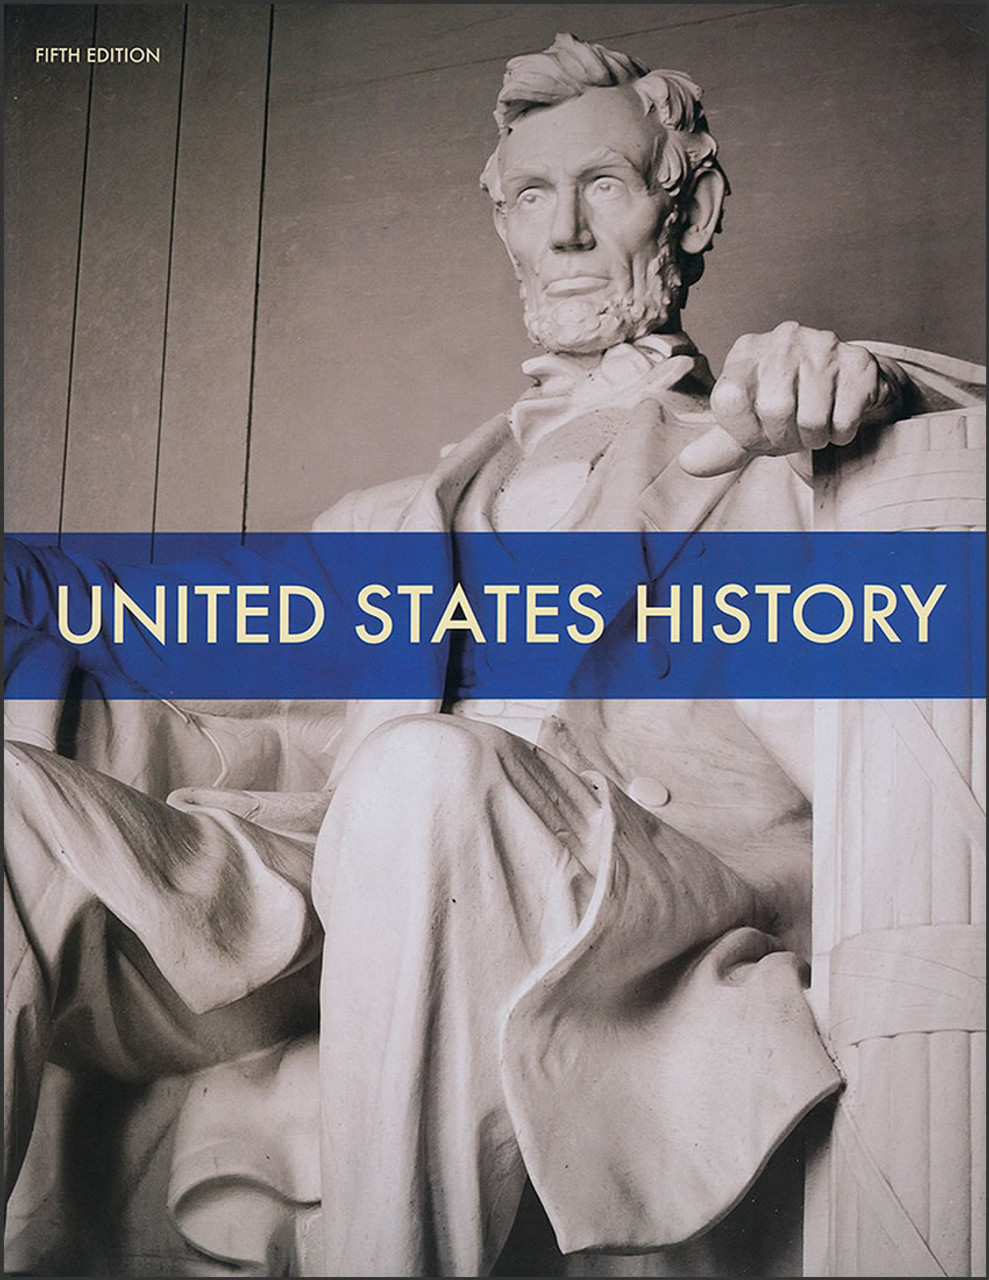 United States History, 5th edition (second half)